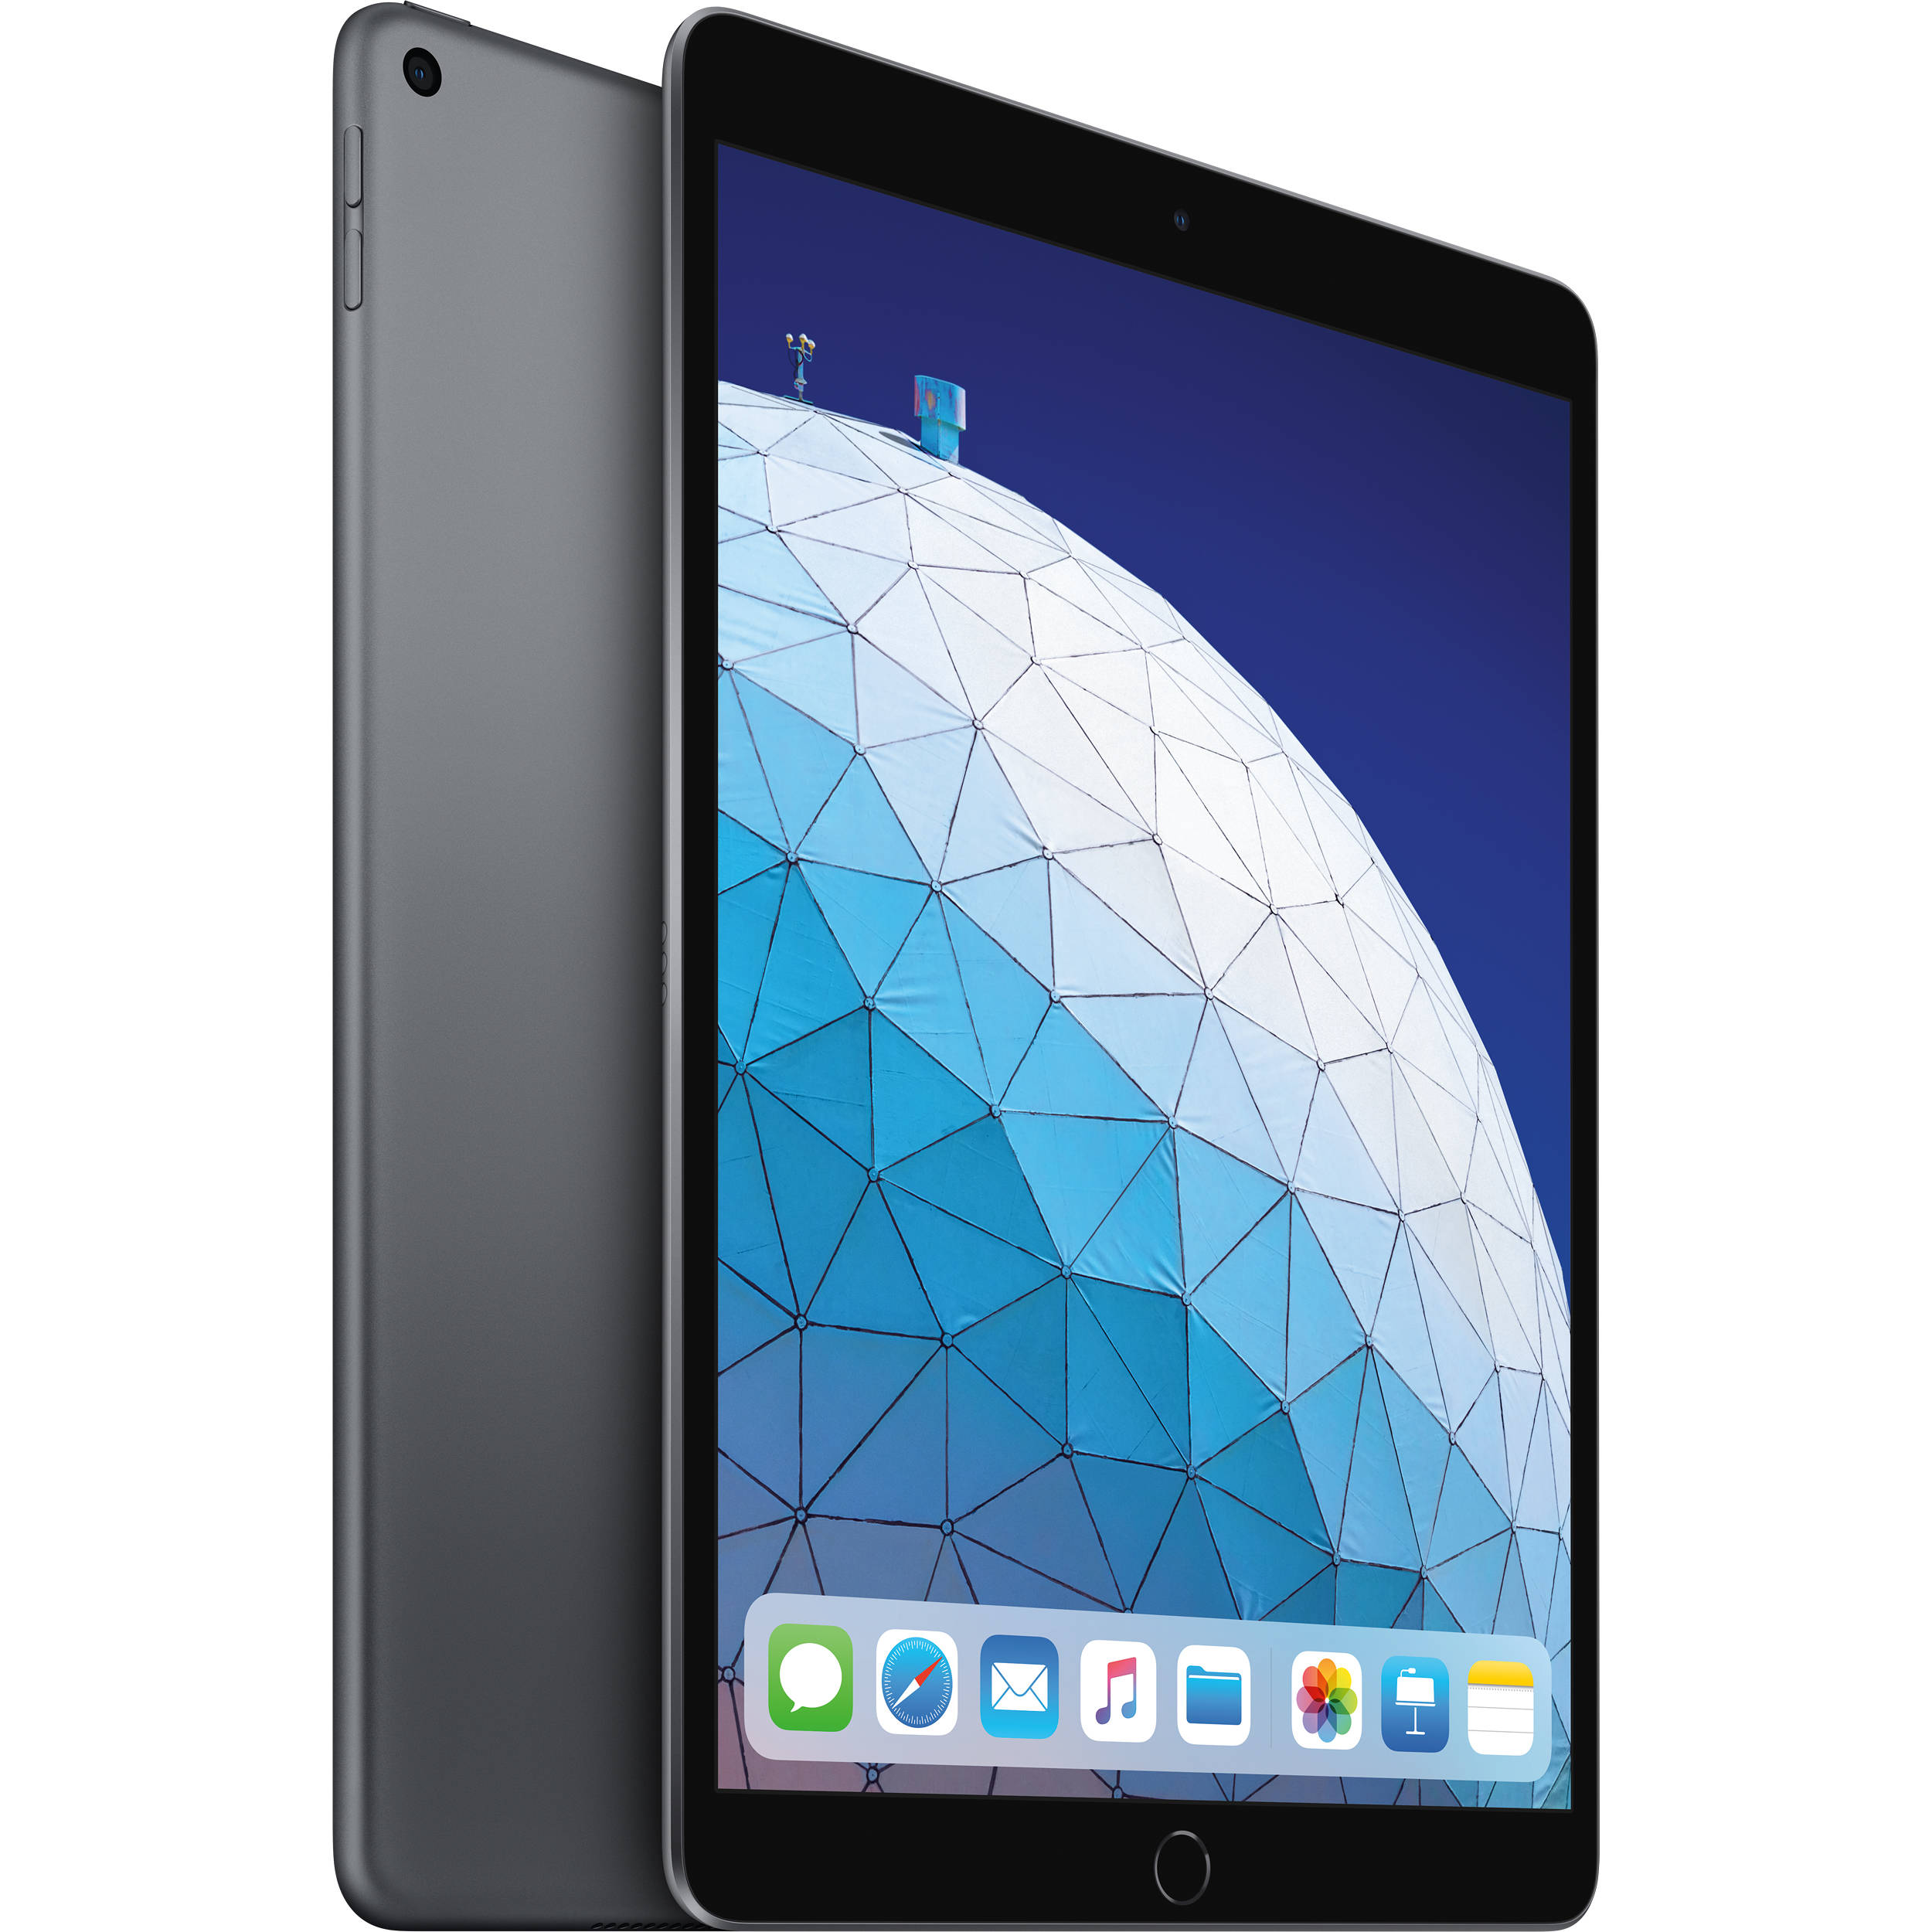 "Image of Apple iPad Air (2019) 10.5"" MUUJ2 64GB WiFi with Tempered Glass Screen Protector and Folding Case (Black) - Space Gray (with 1 year official Apple Warranty)"